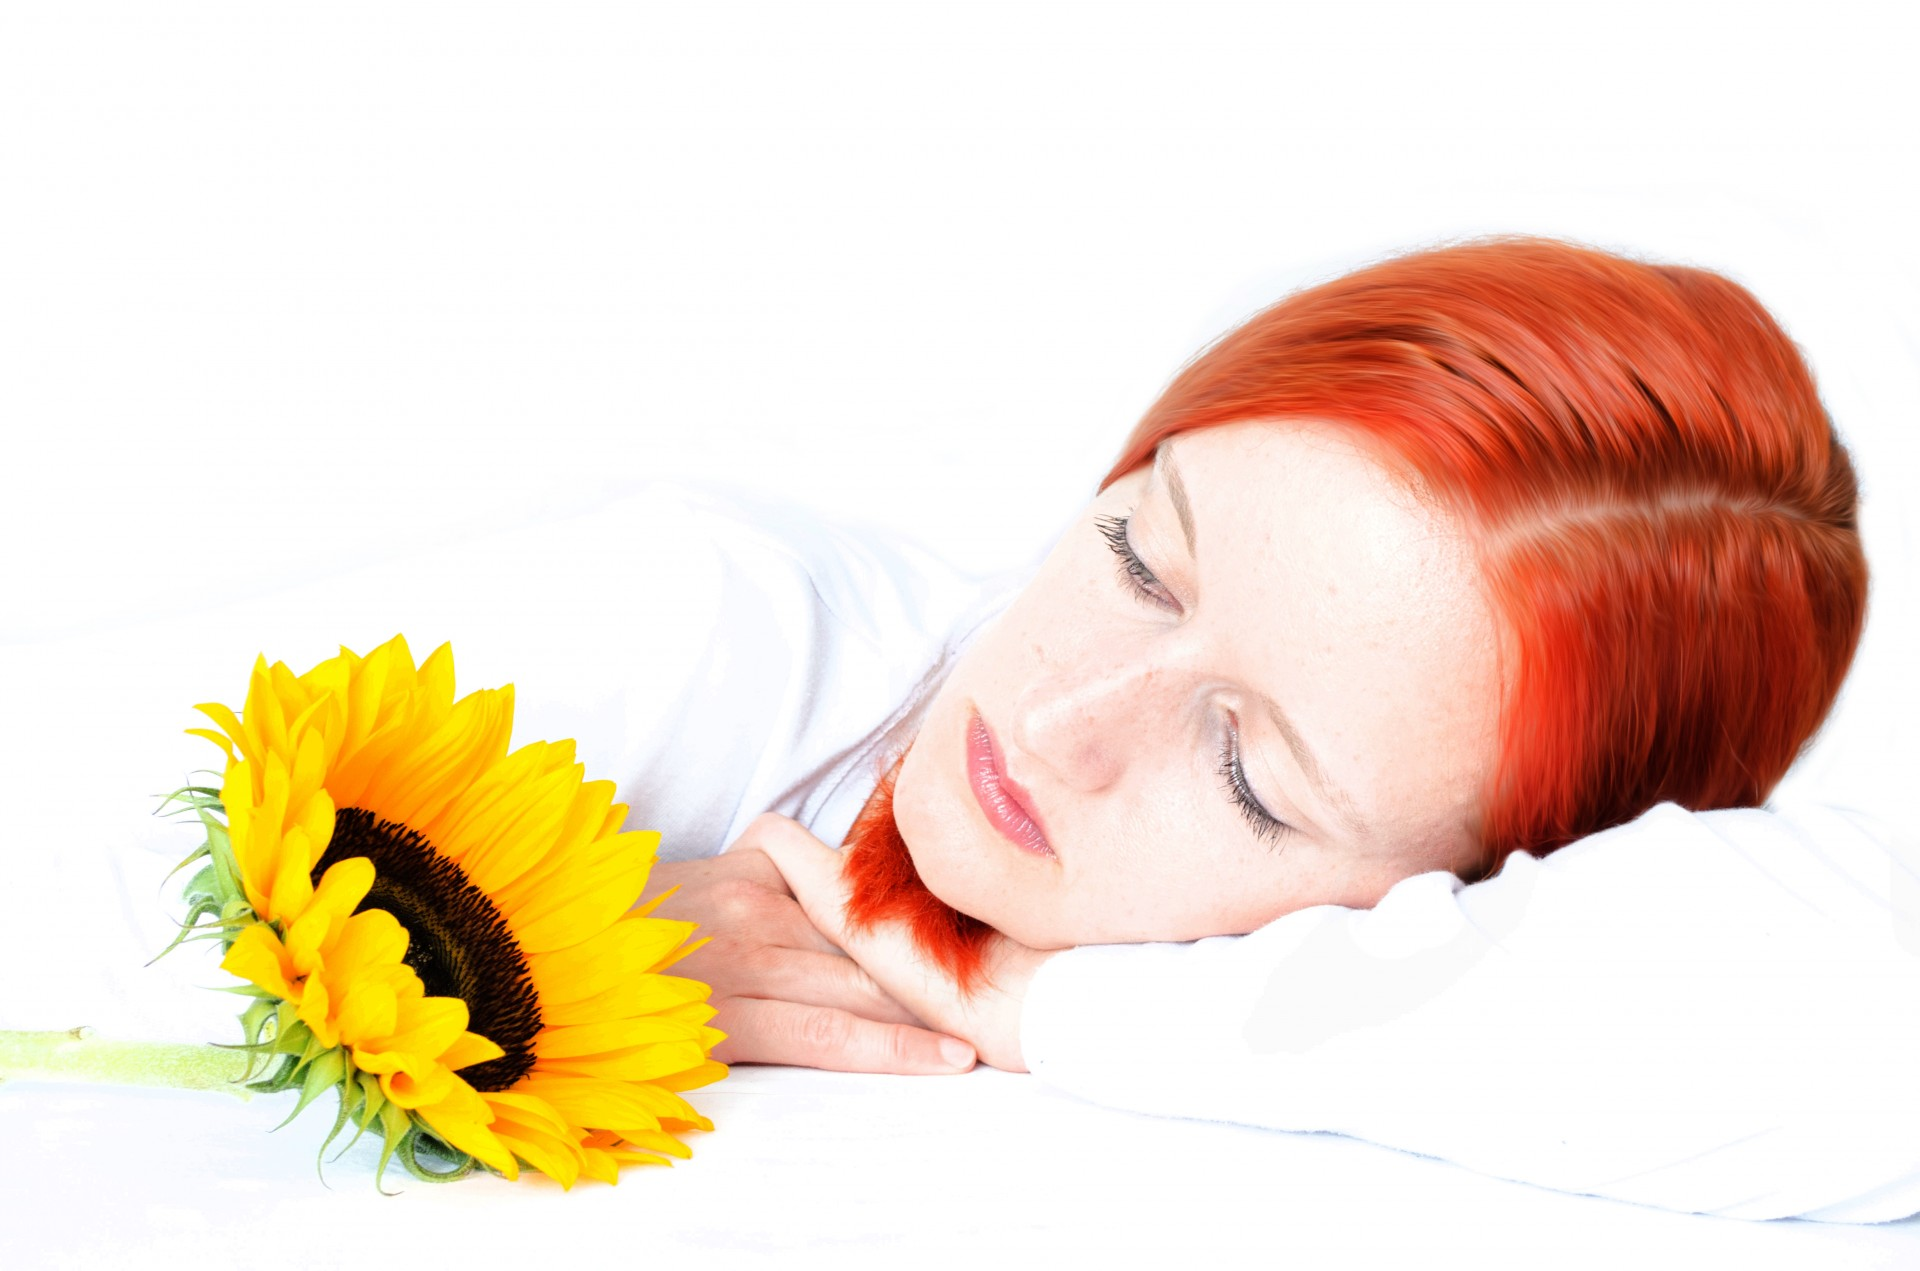 Woman with red hair and sunflower